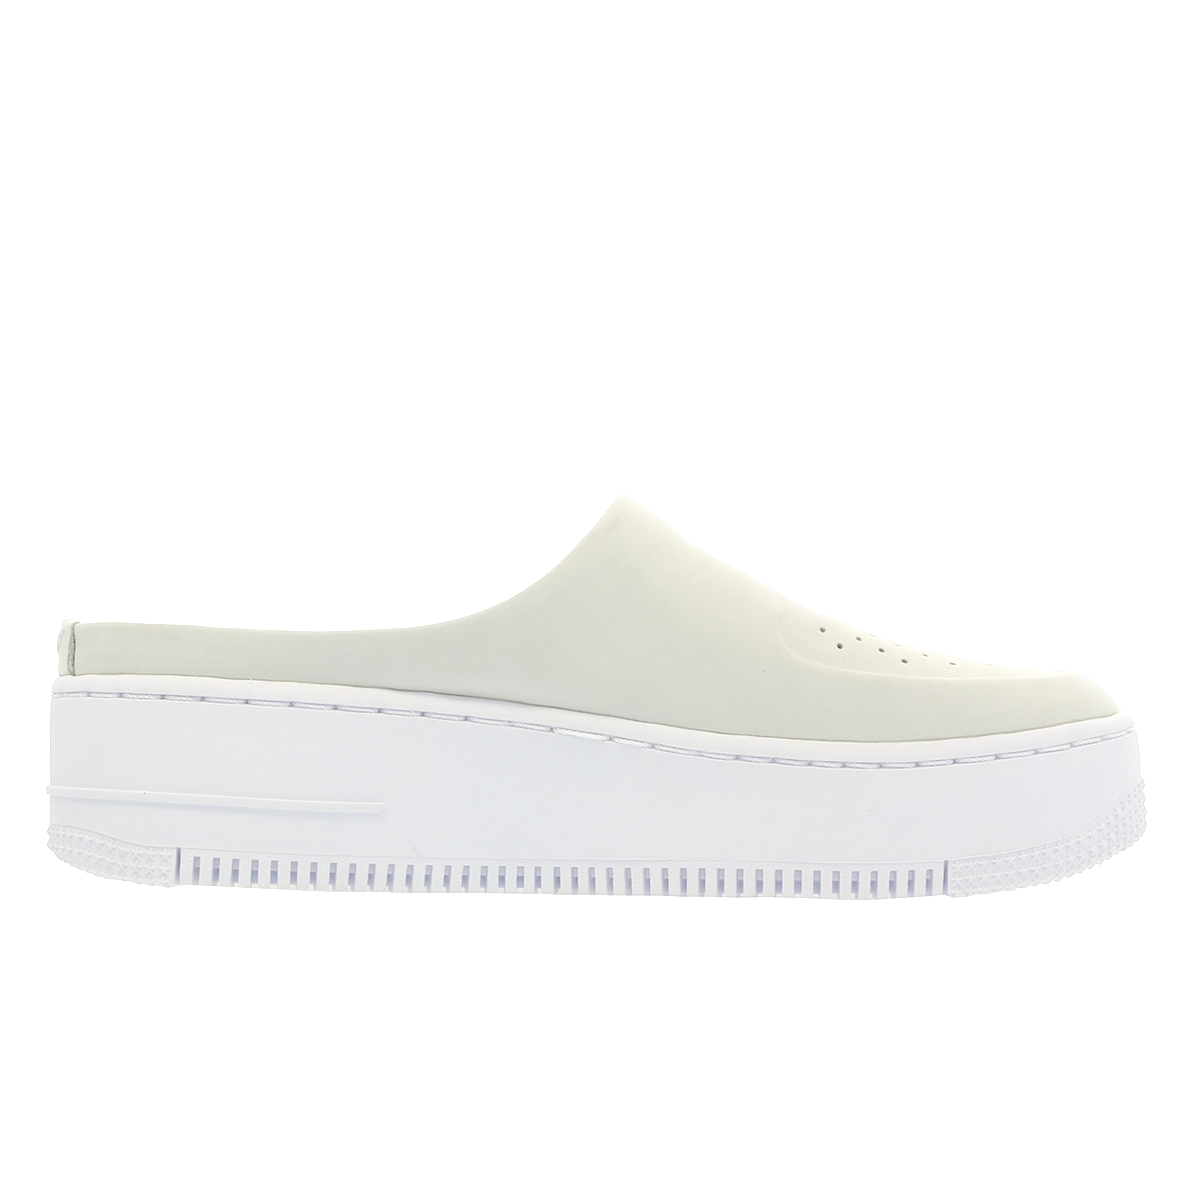 reputable site f9ba2 8f98a NIKE WMNS AIR FORCE 1 LOVER XX Nike women air force 1 lover XX OFF  WHITE/WHITE ao1523-100-l